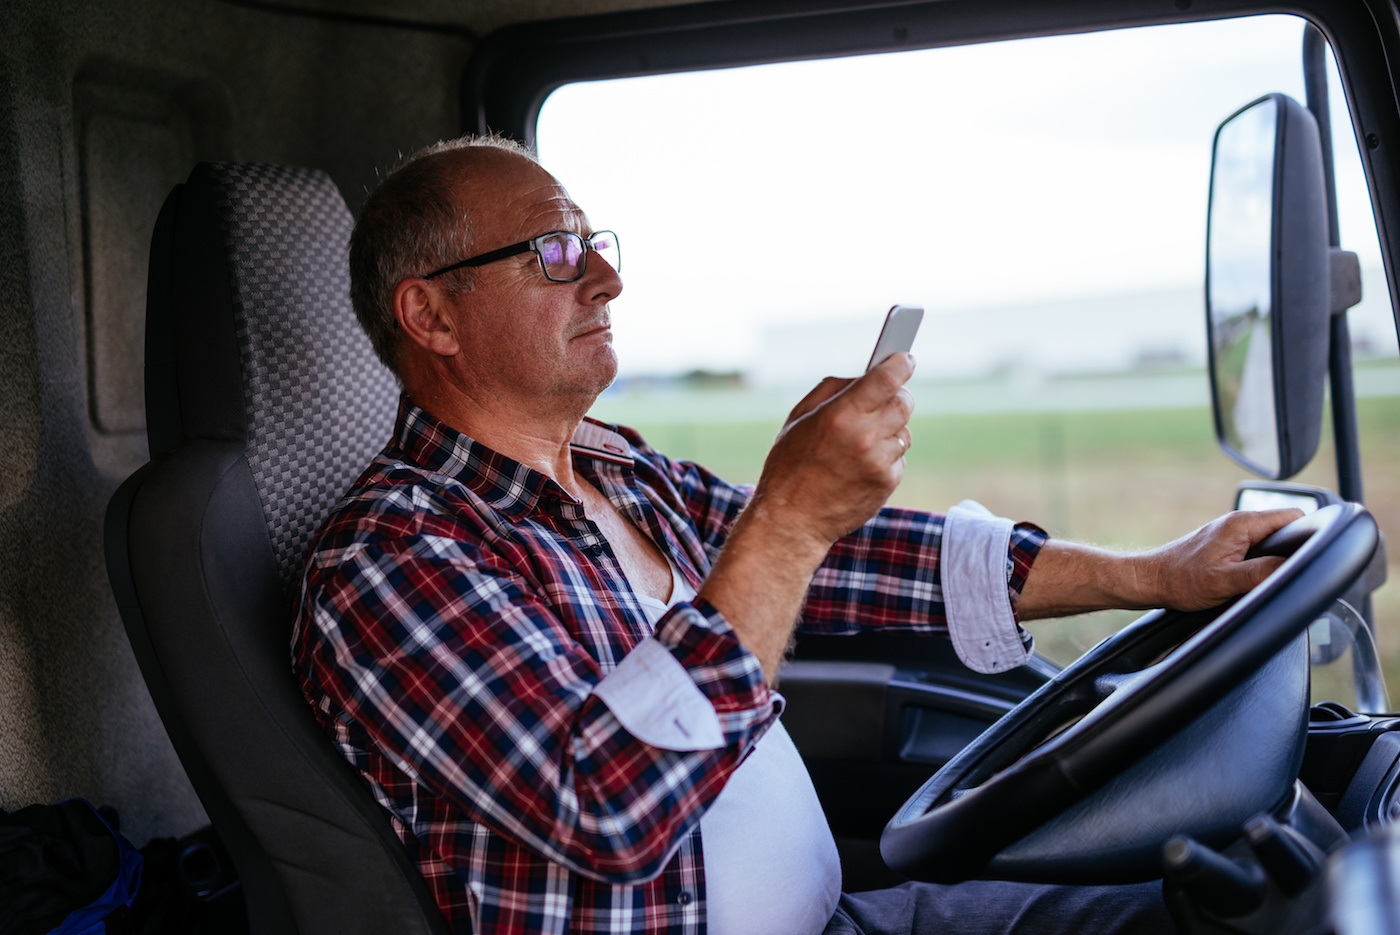 Image result for driver on phone